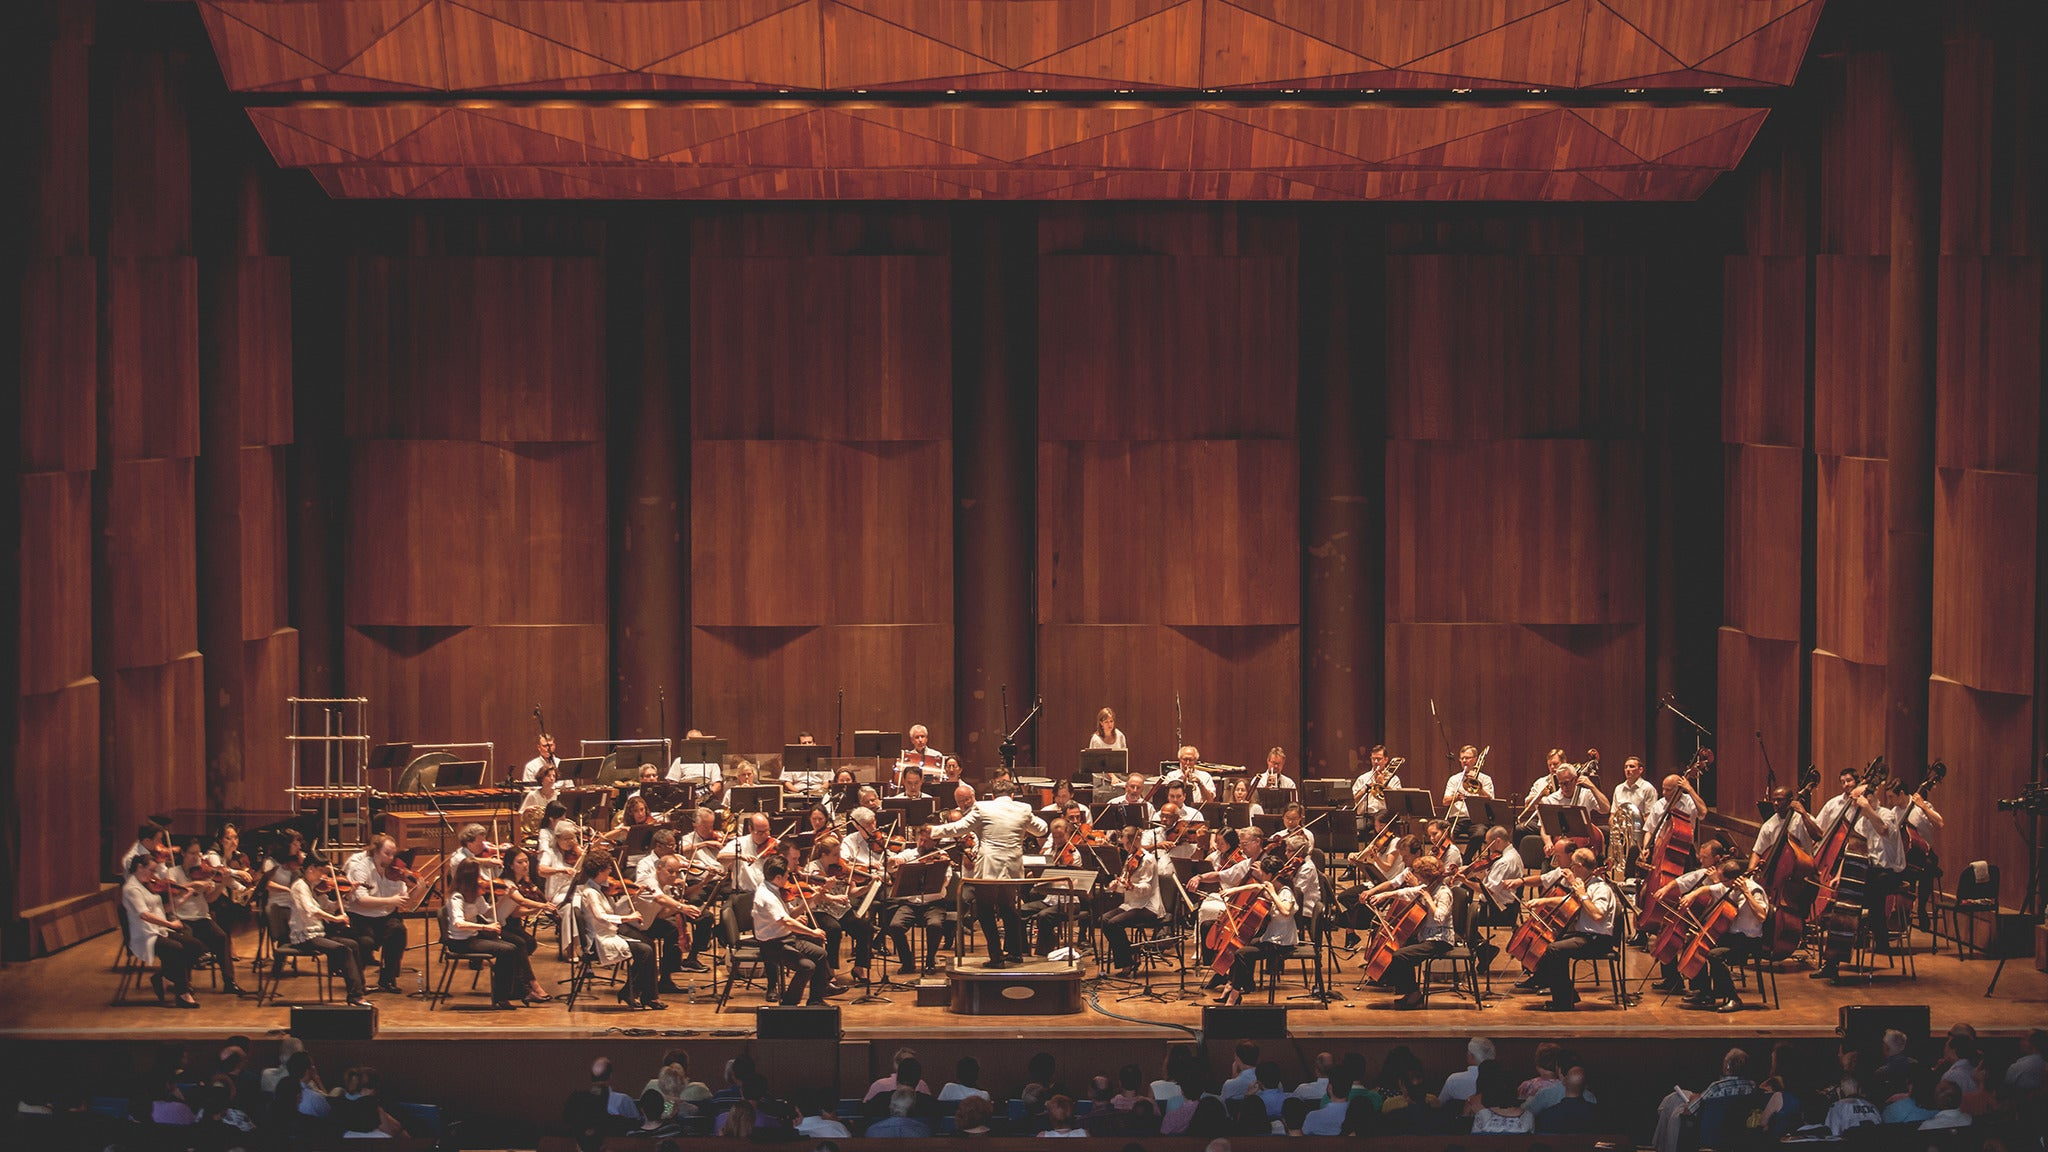 Beethoven's 9th W/the Philadelphia Orch